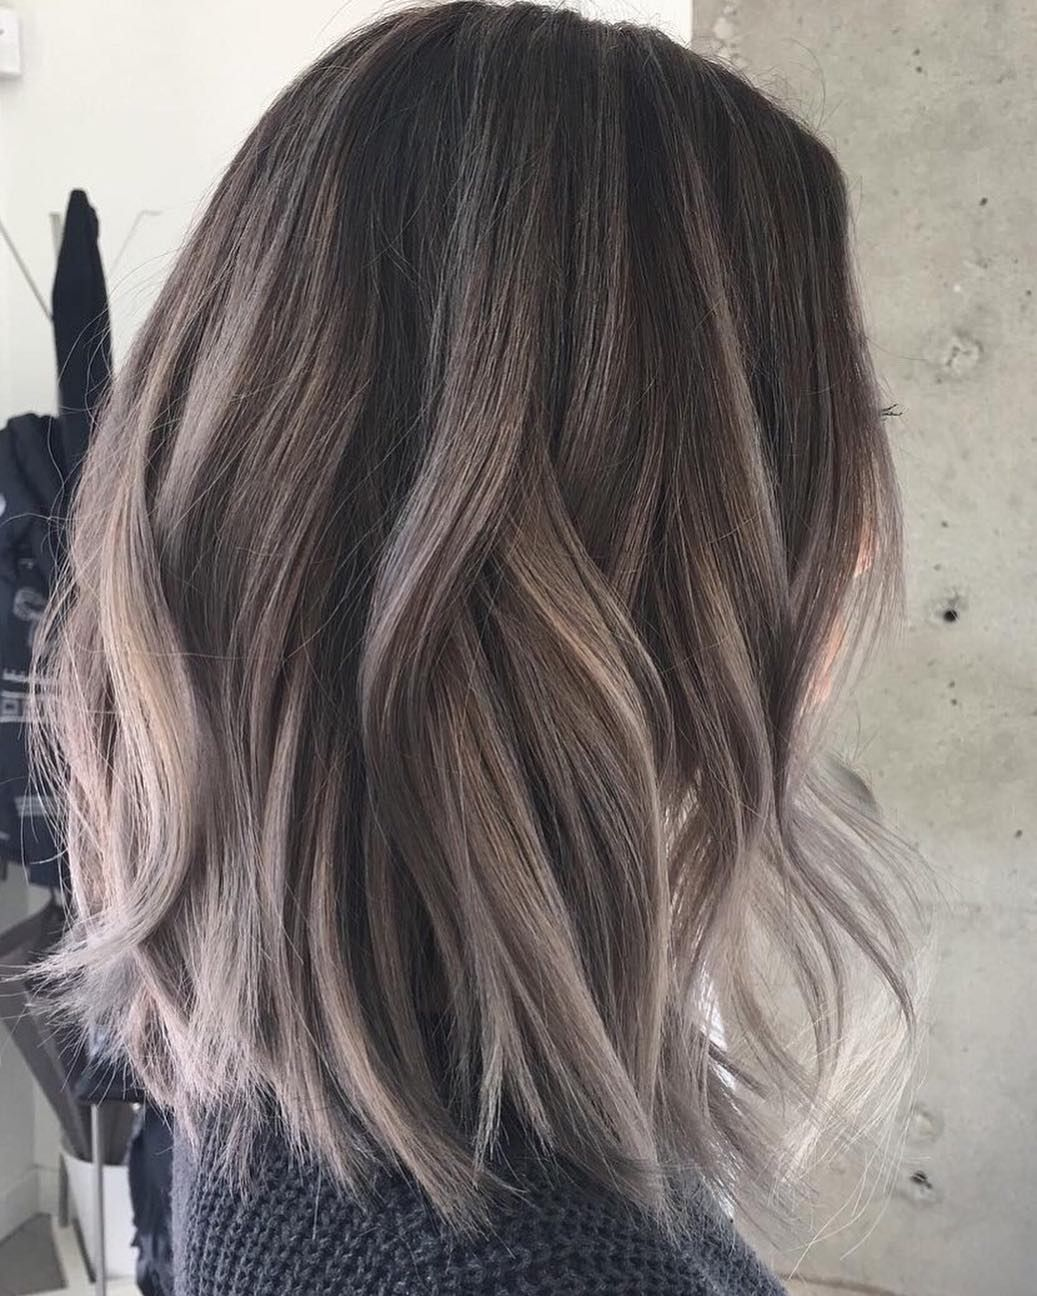 Hair Color Ideas 2020.10 Medium Length Hair Color Ideas 2020 Hair Color Brown